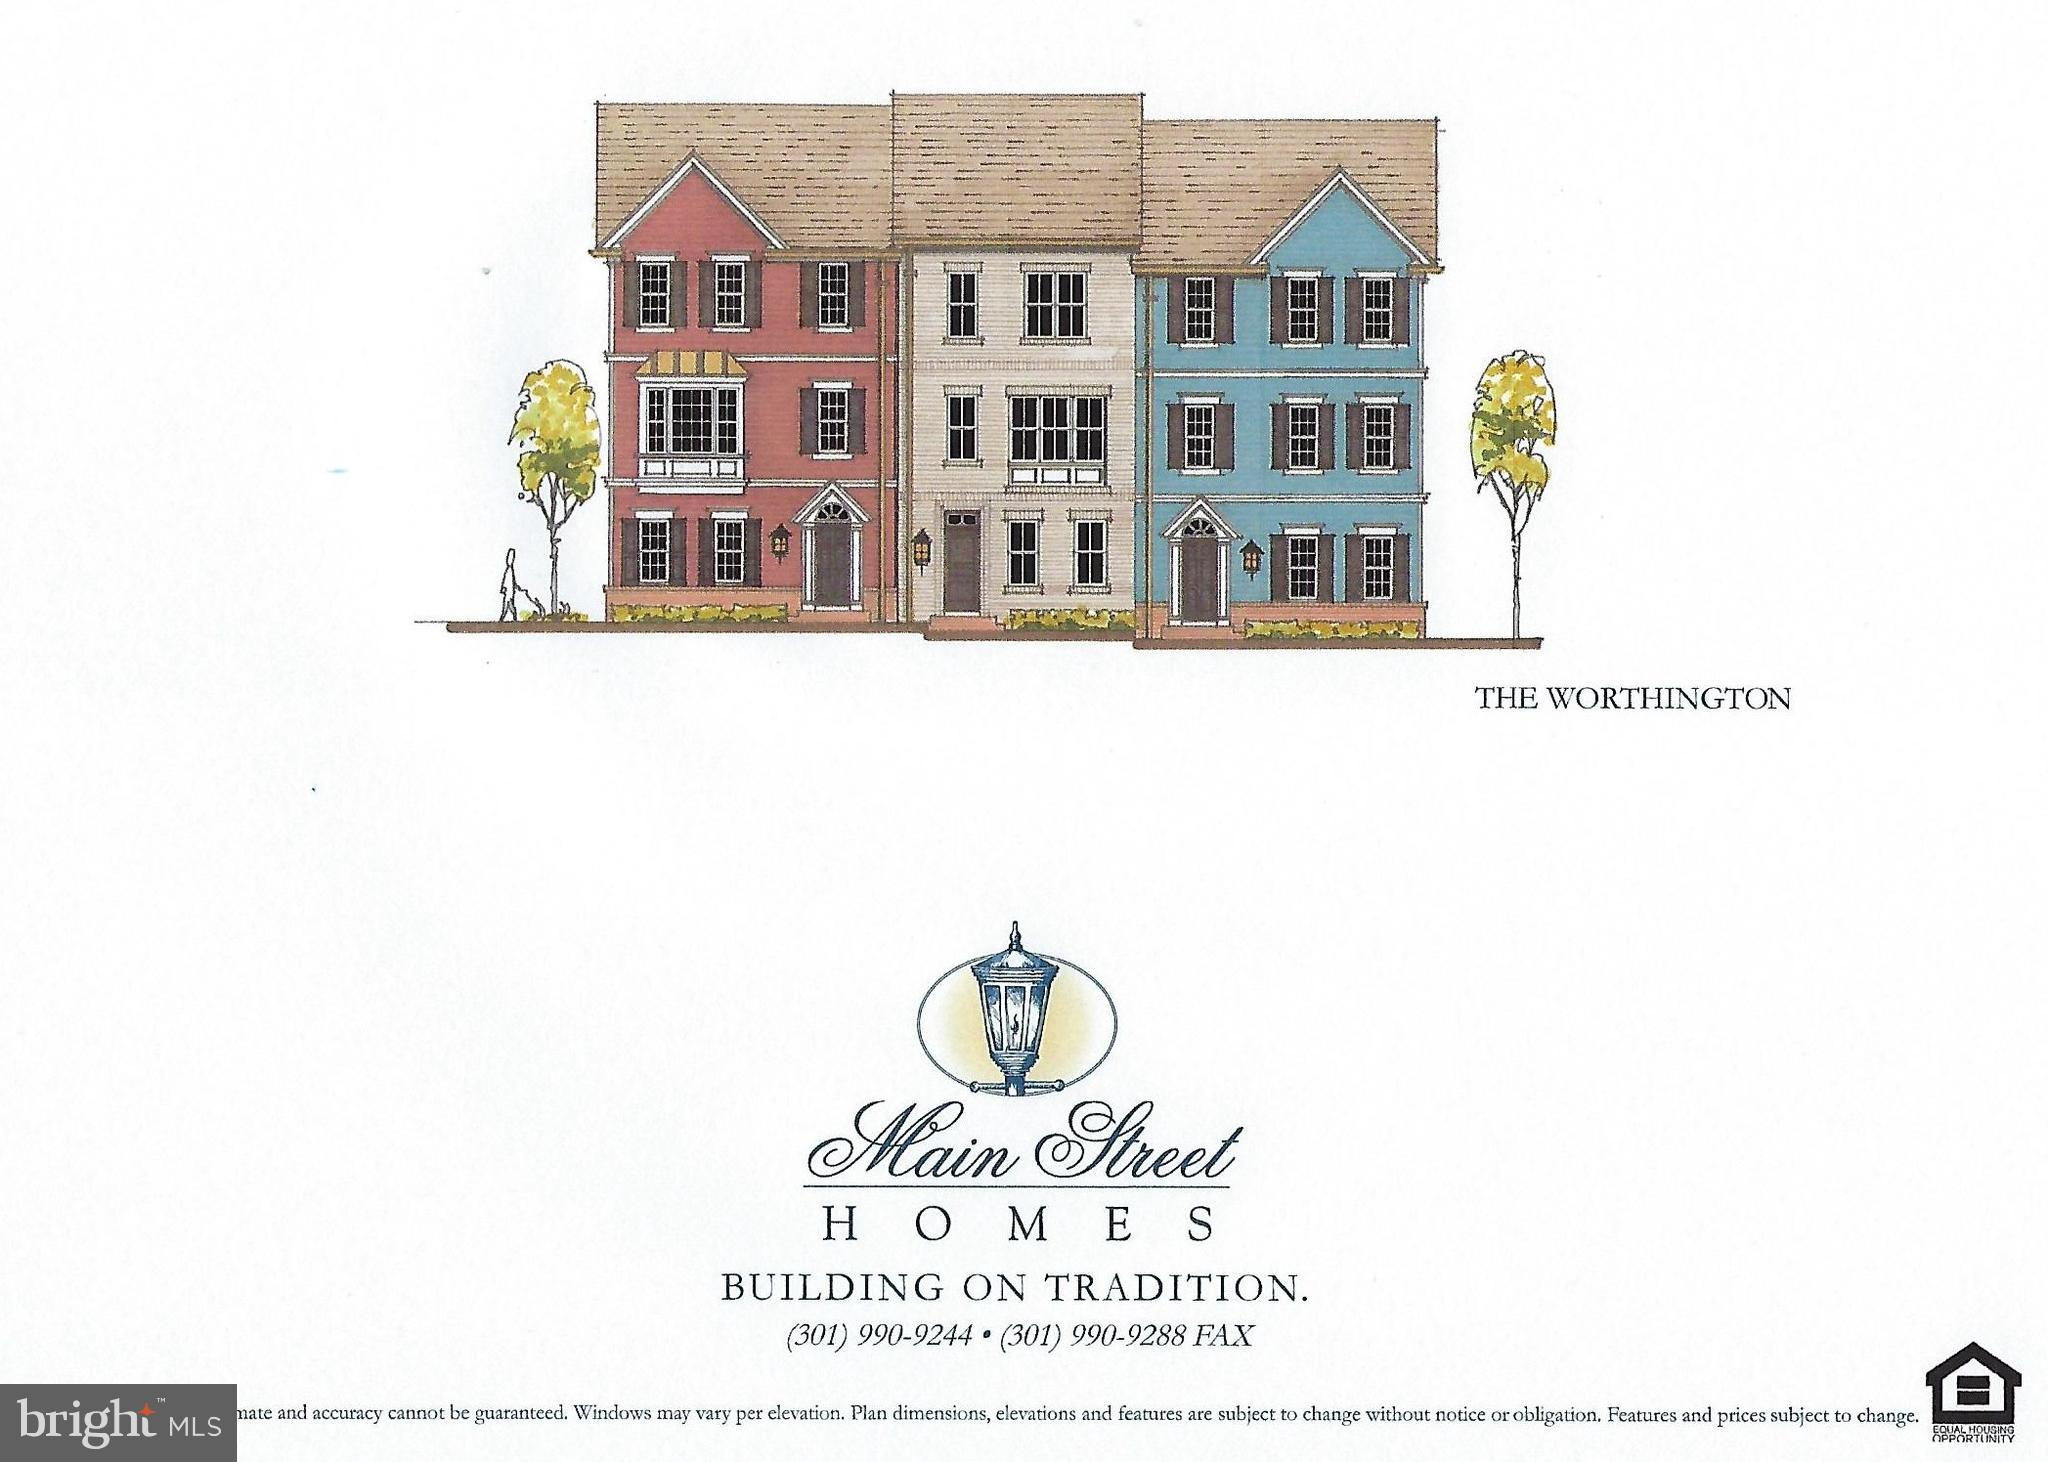 The 24 Foot Wide Townhome by Main Street Homes is back - but with an all new Open Concept Floorplan!